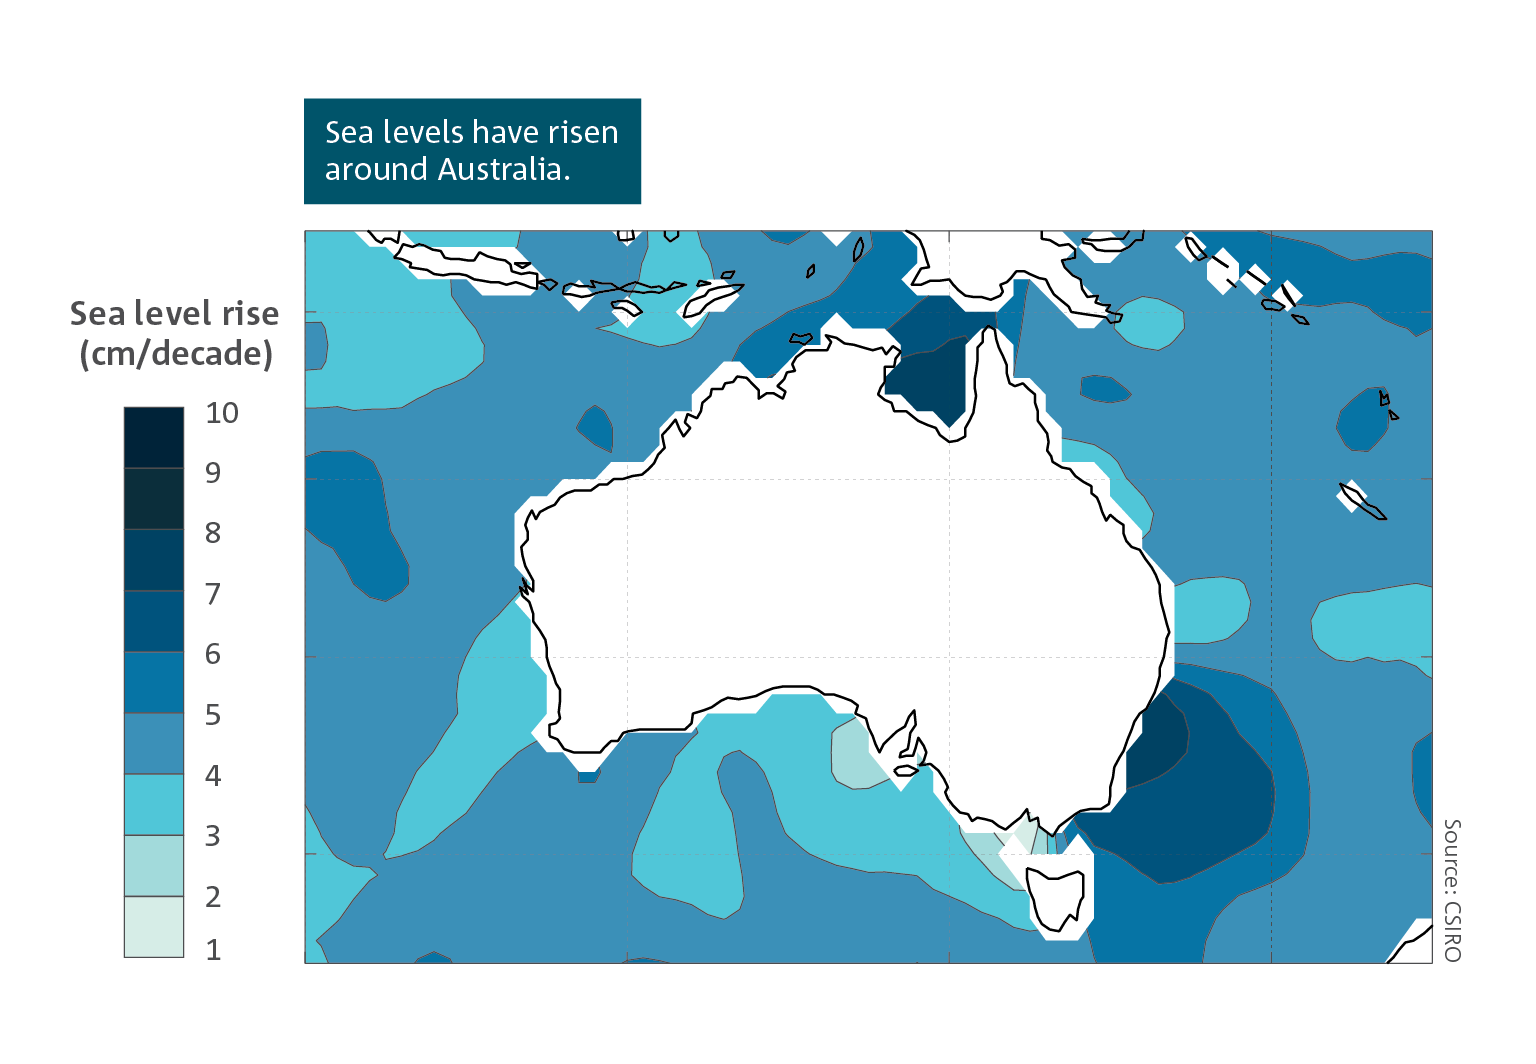 Map showing sea level rise in cm per decade. Levels have risen all around Australia varying between 1 cm and 10 cm. The largest rises are off the south-east coast and in the Gulf of Carpentaria.